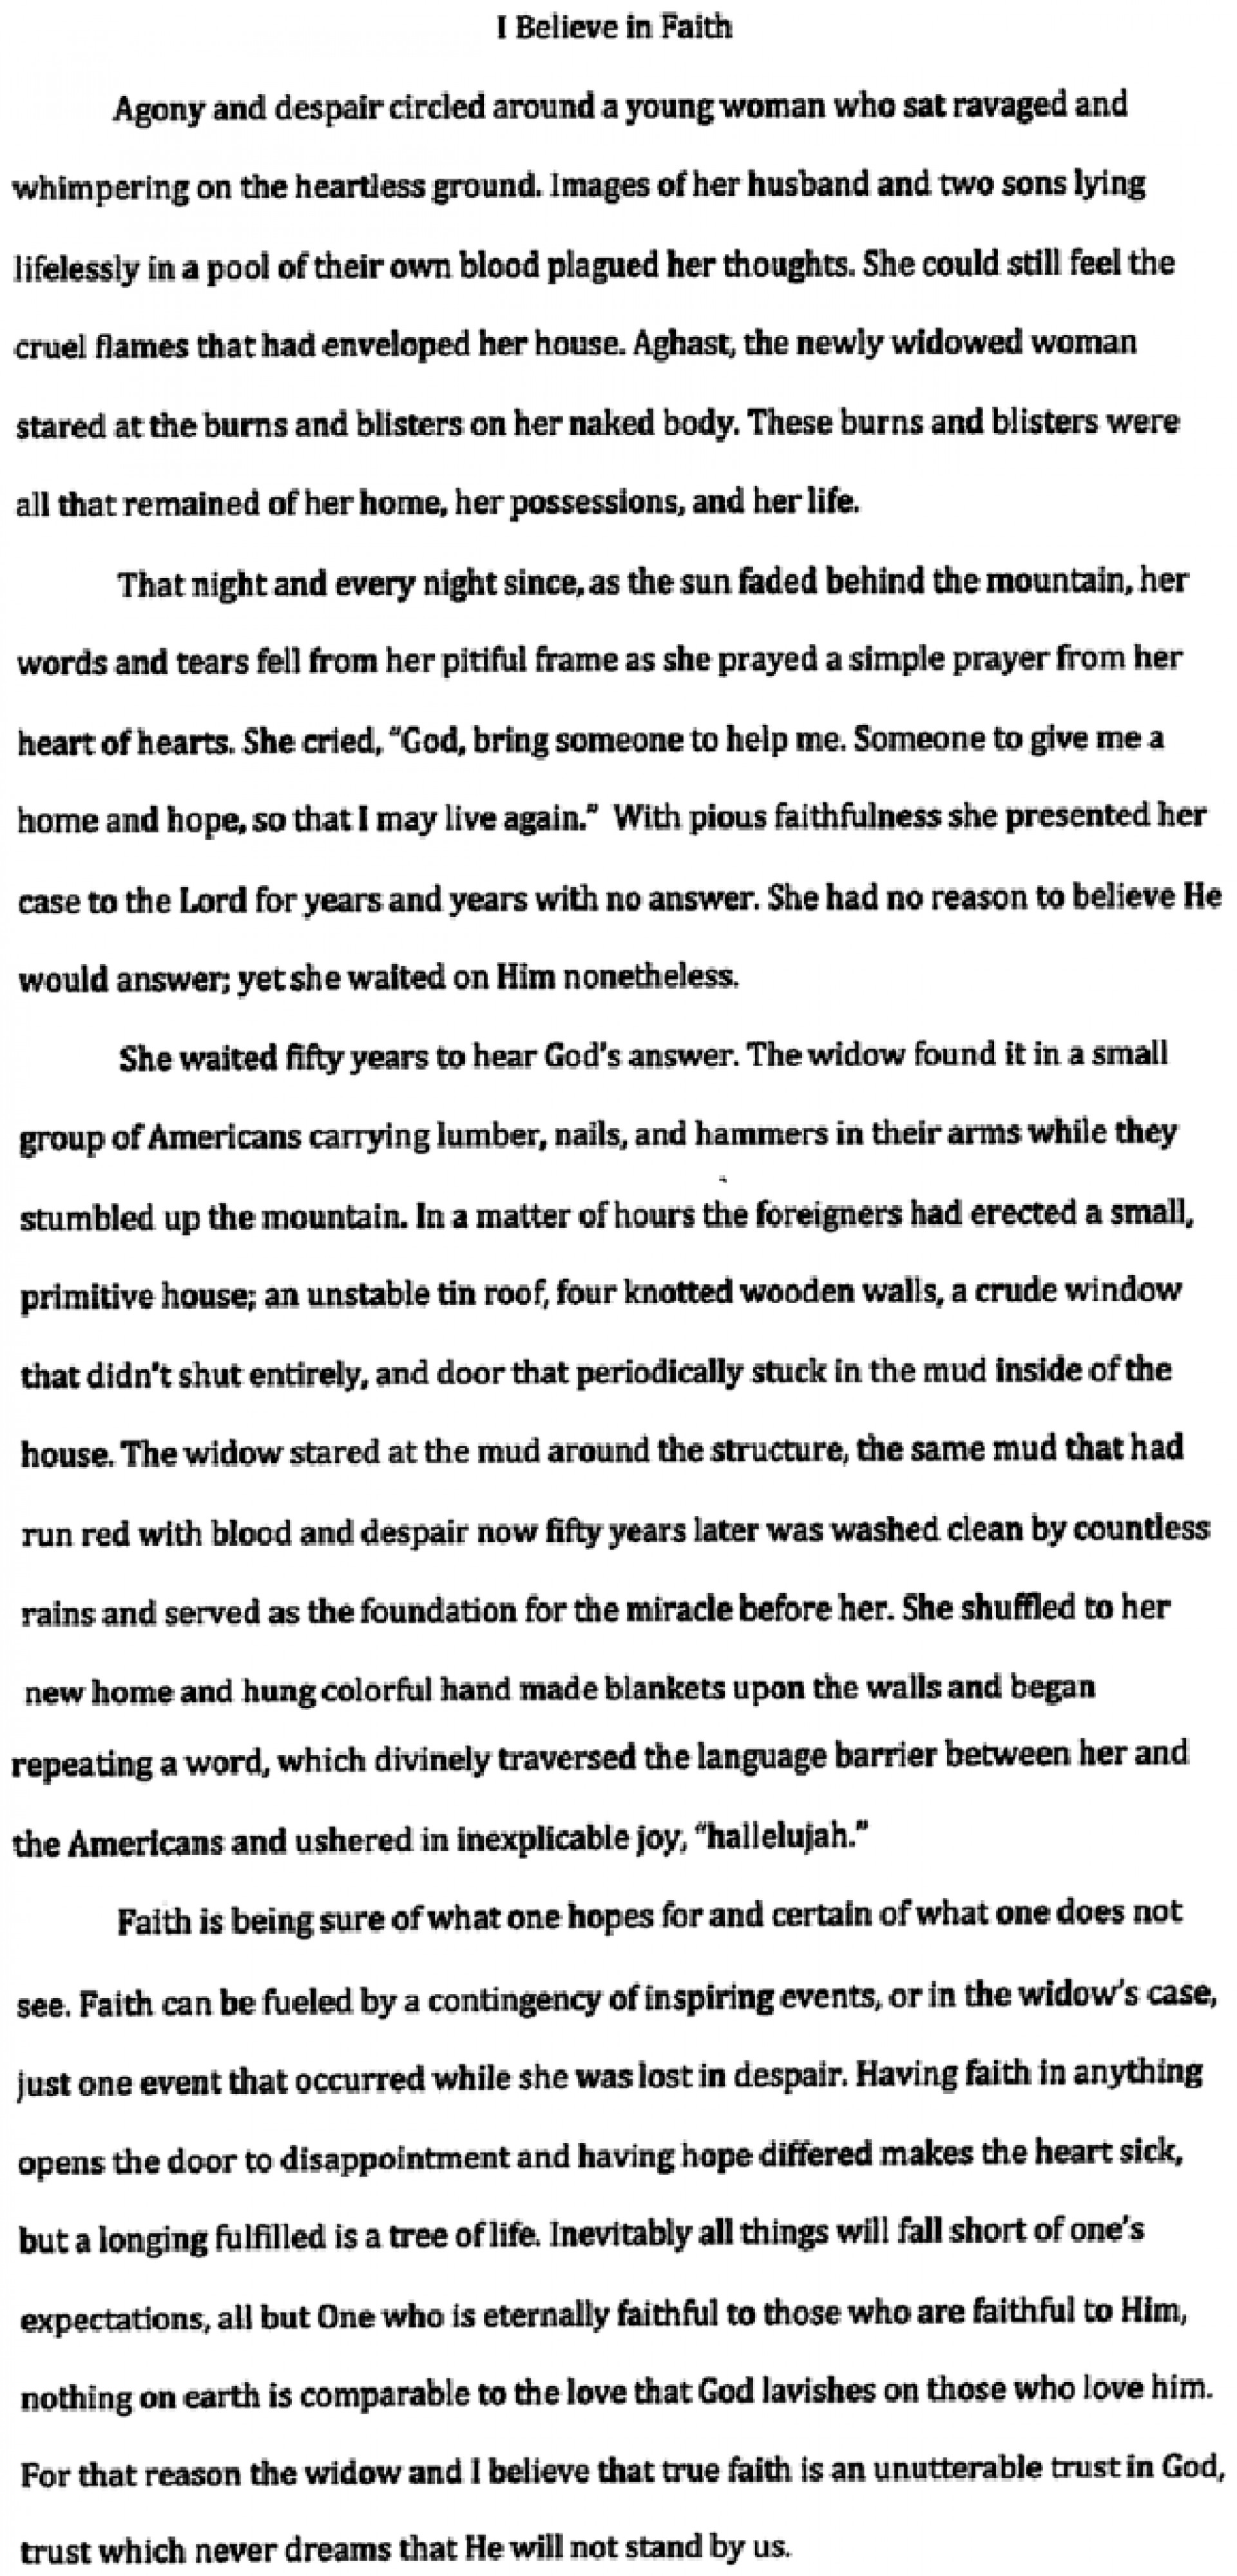 004 Is There One True Religion Essay Example Charlies This I Unique 1920